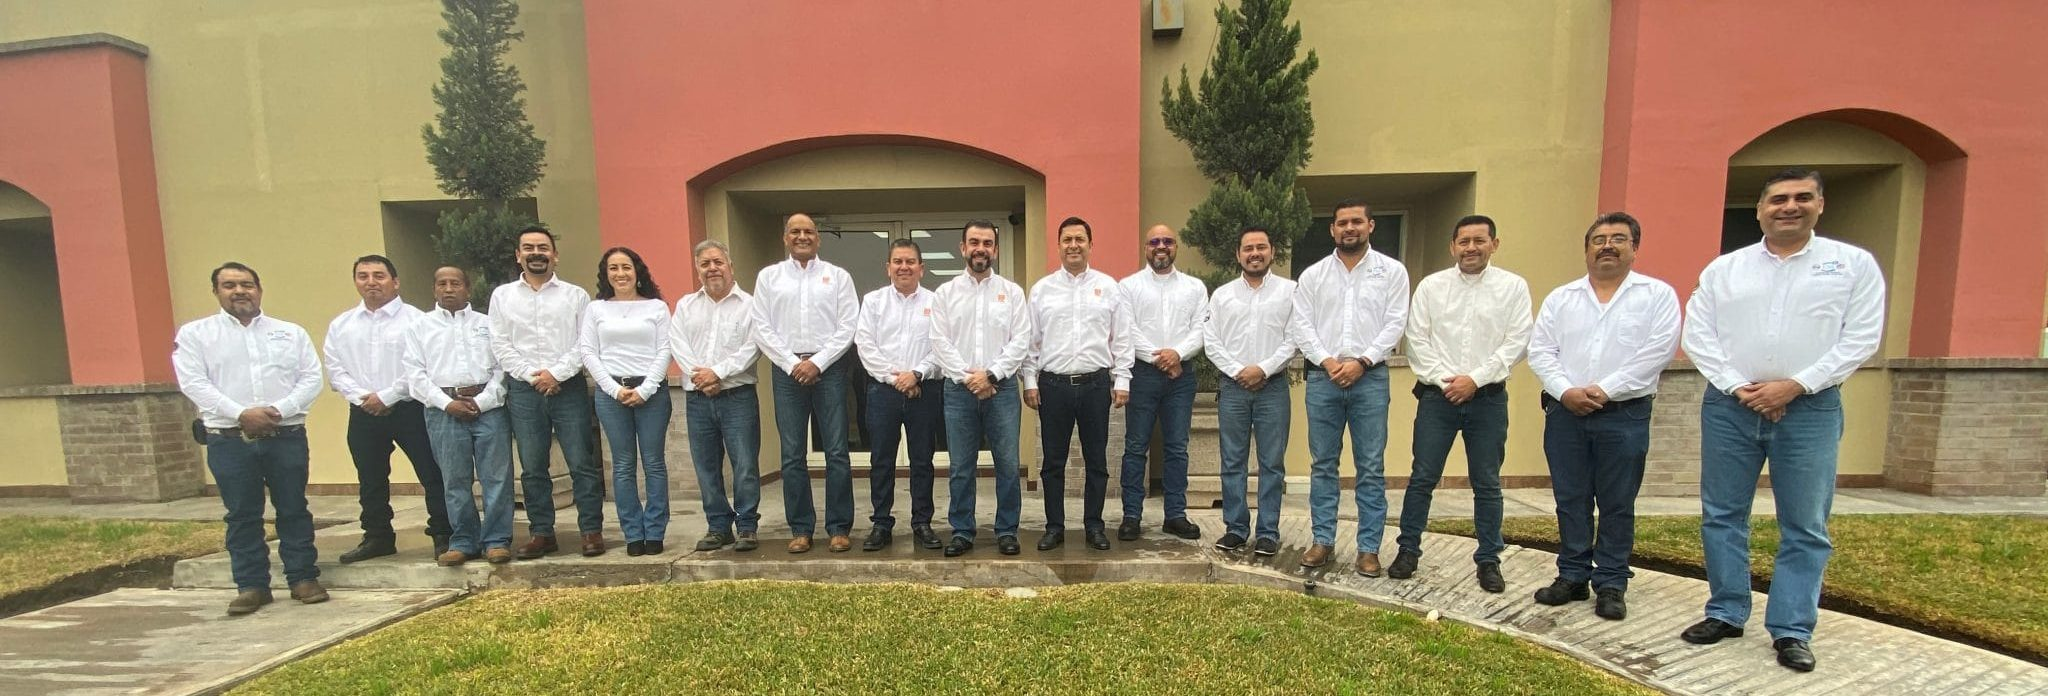 Commercial Contracting Mexico team portrait